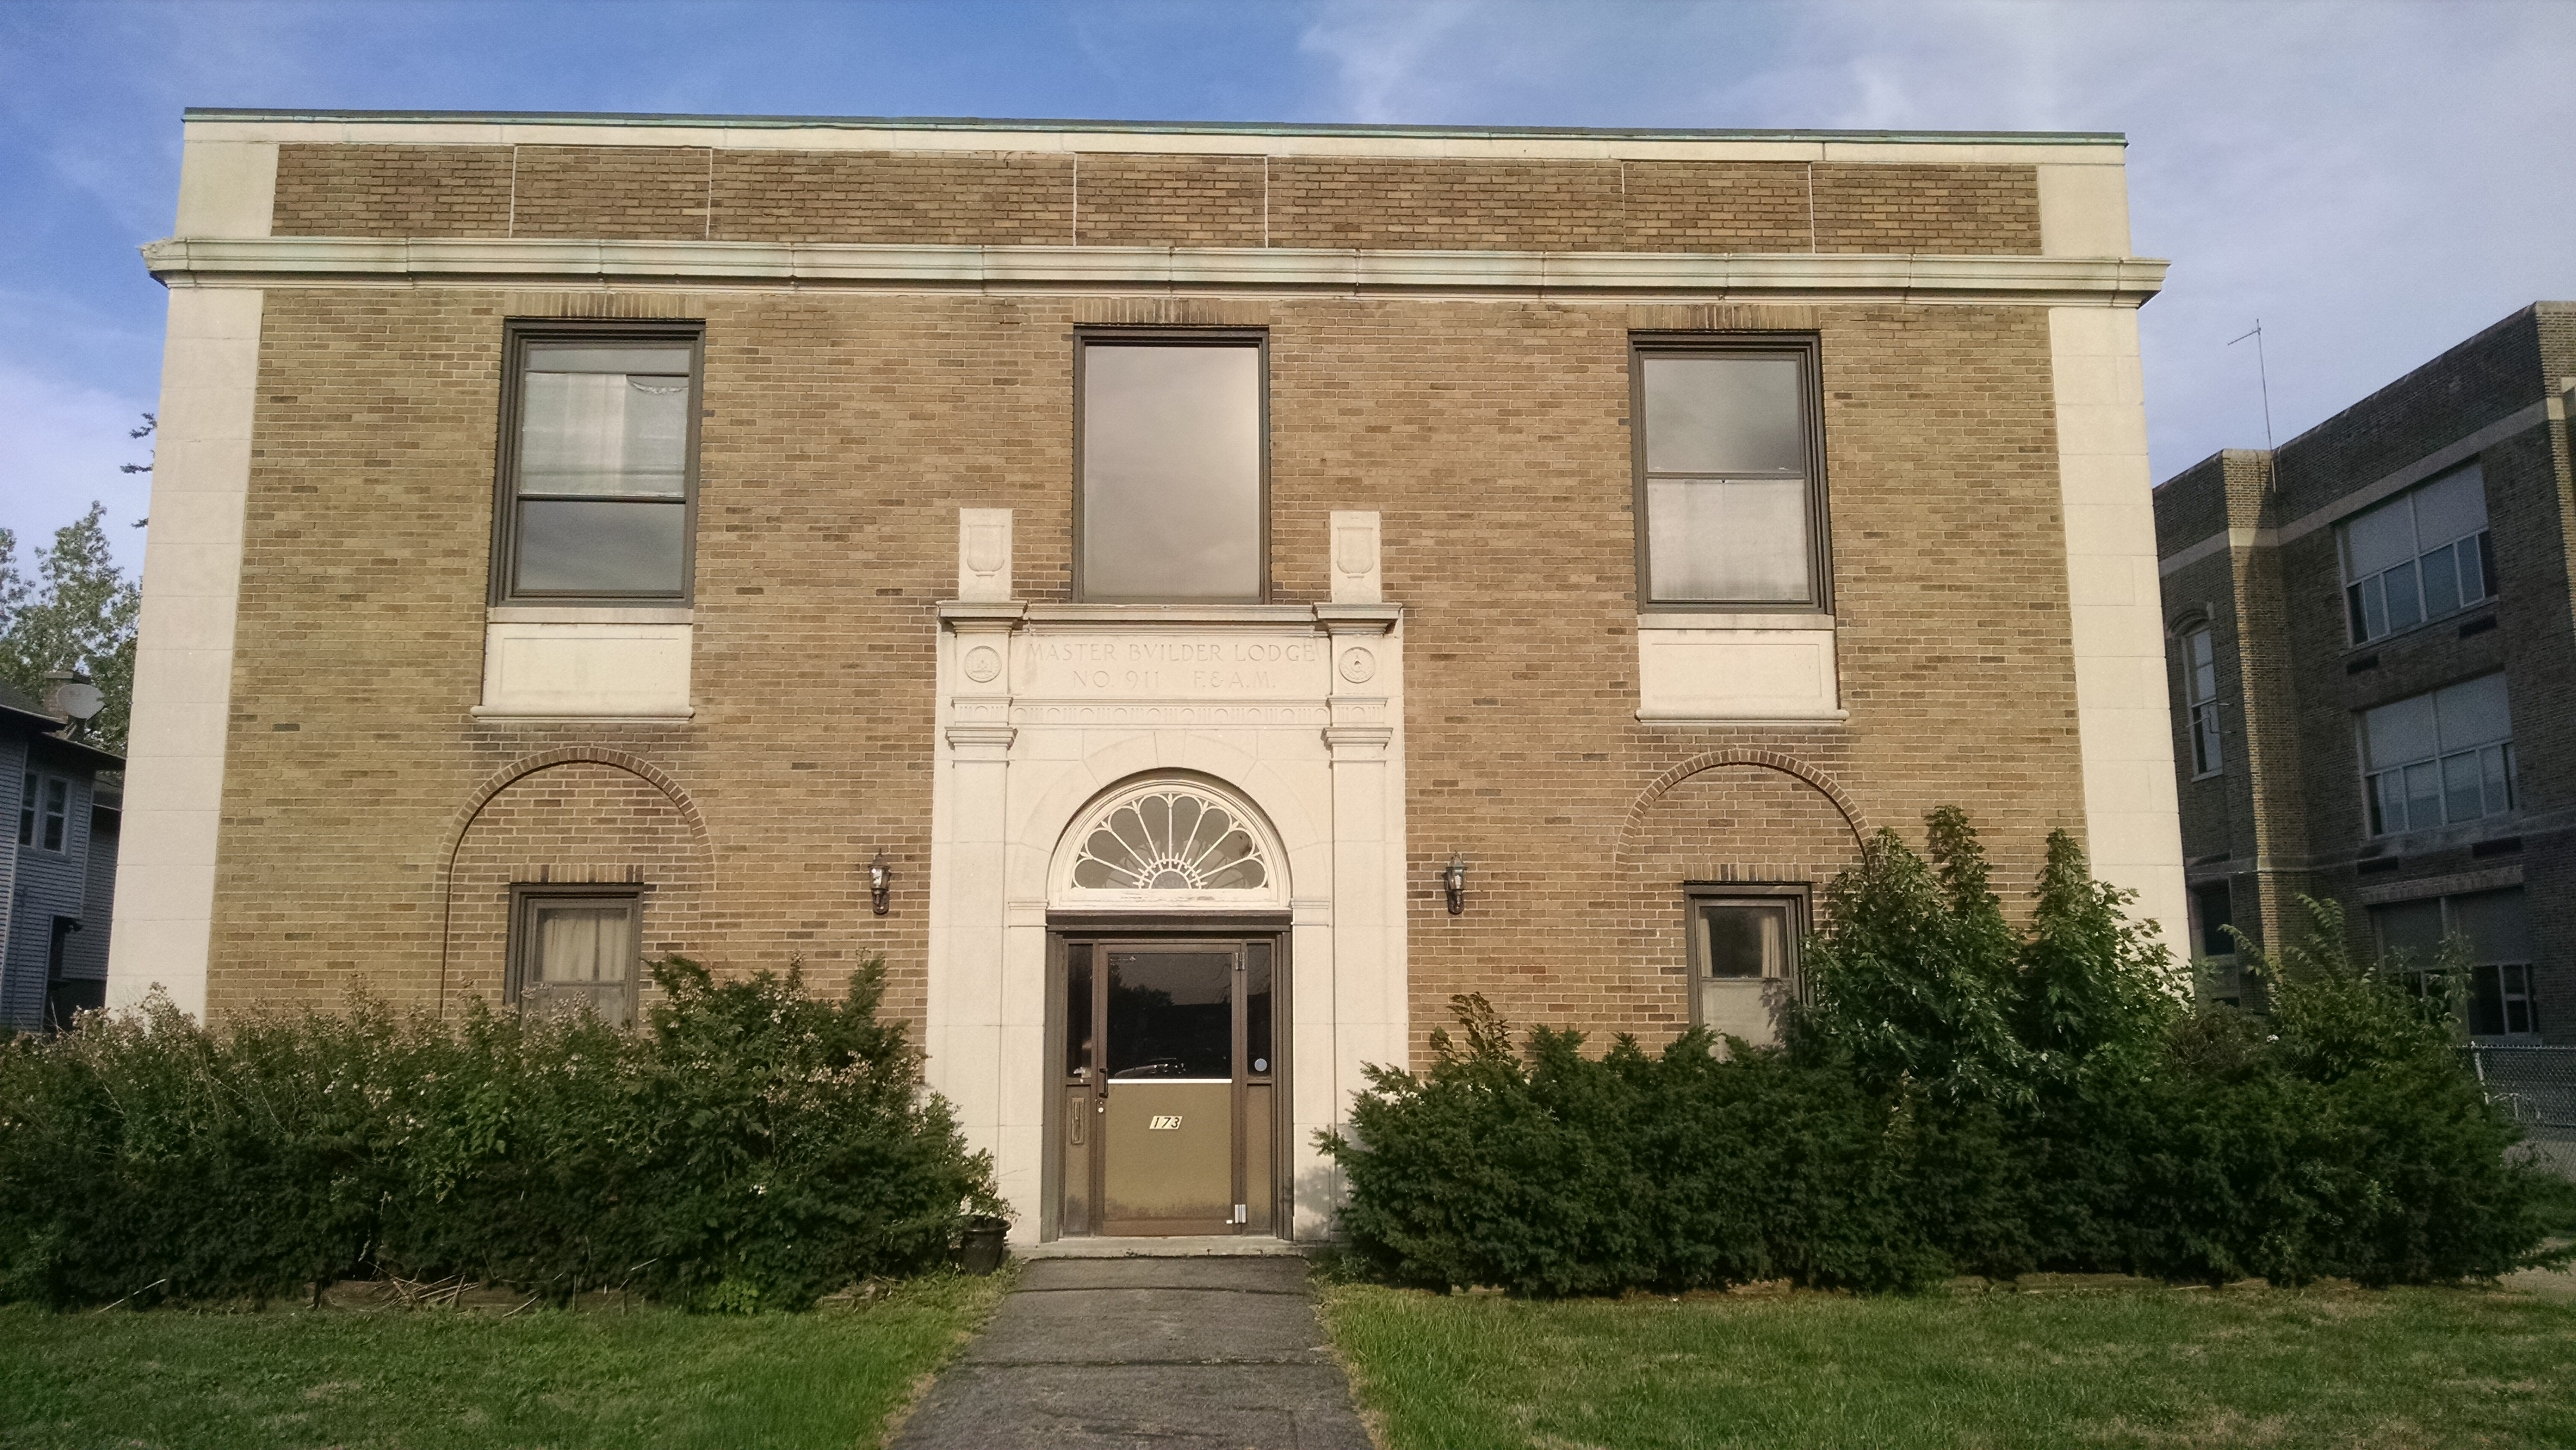 Lofts planned for former Masonic lodge in Kenmore